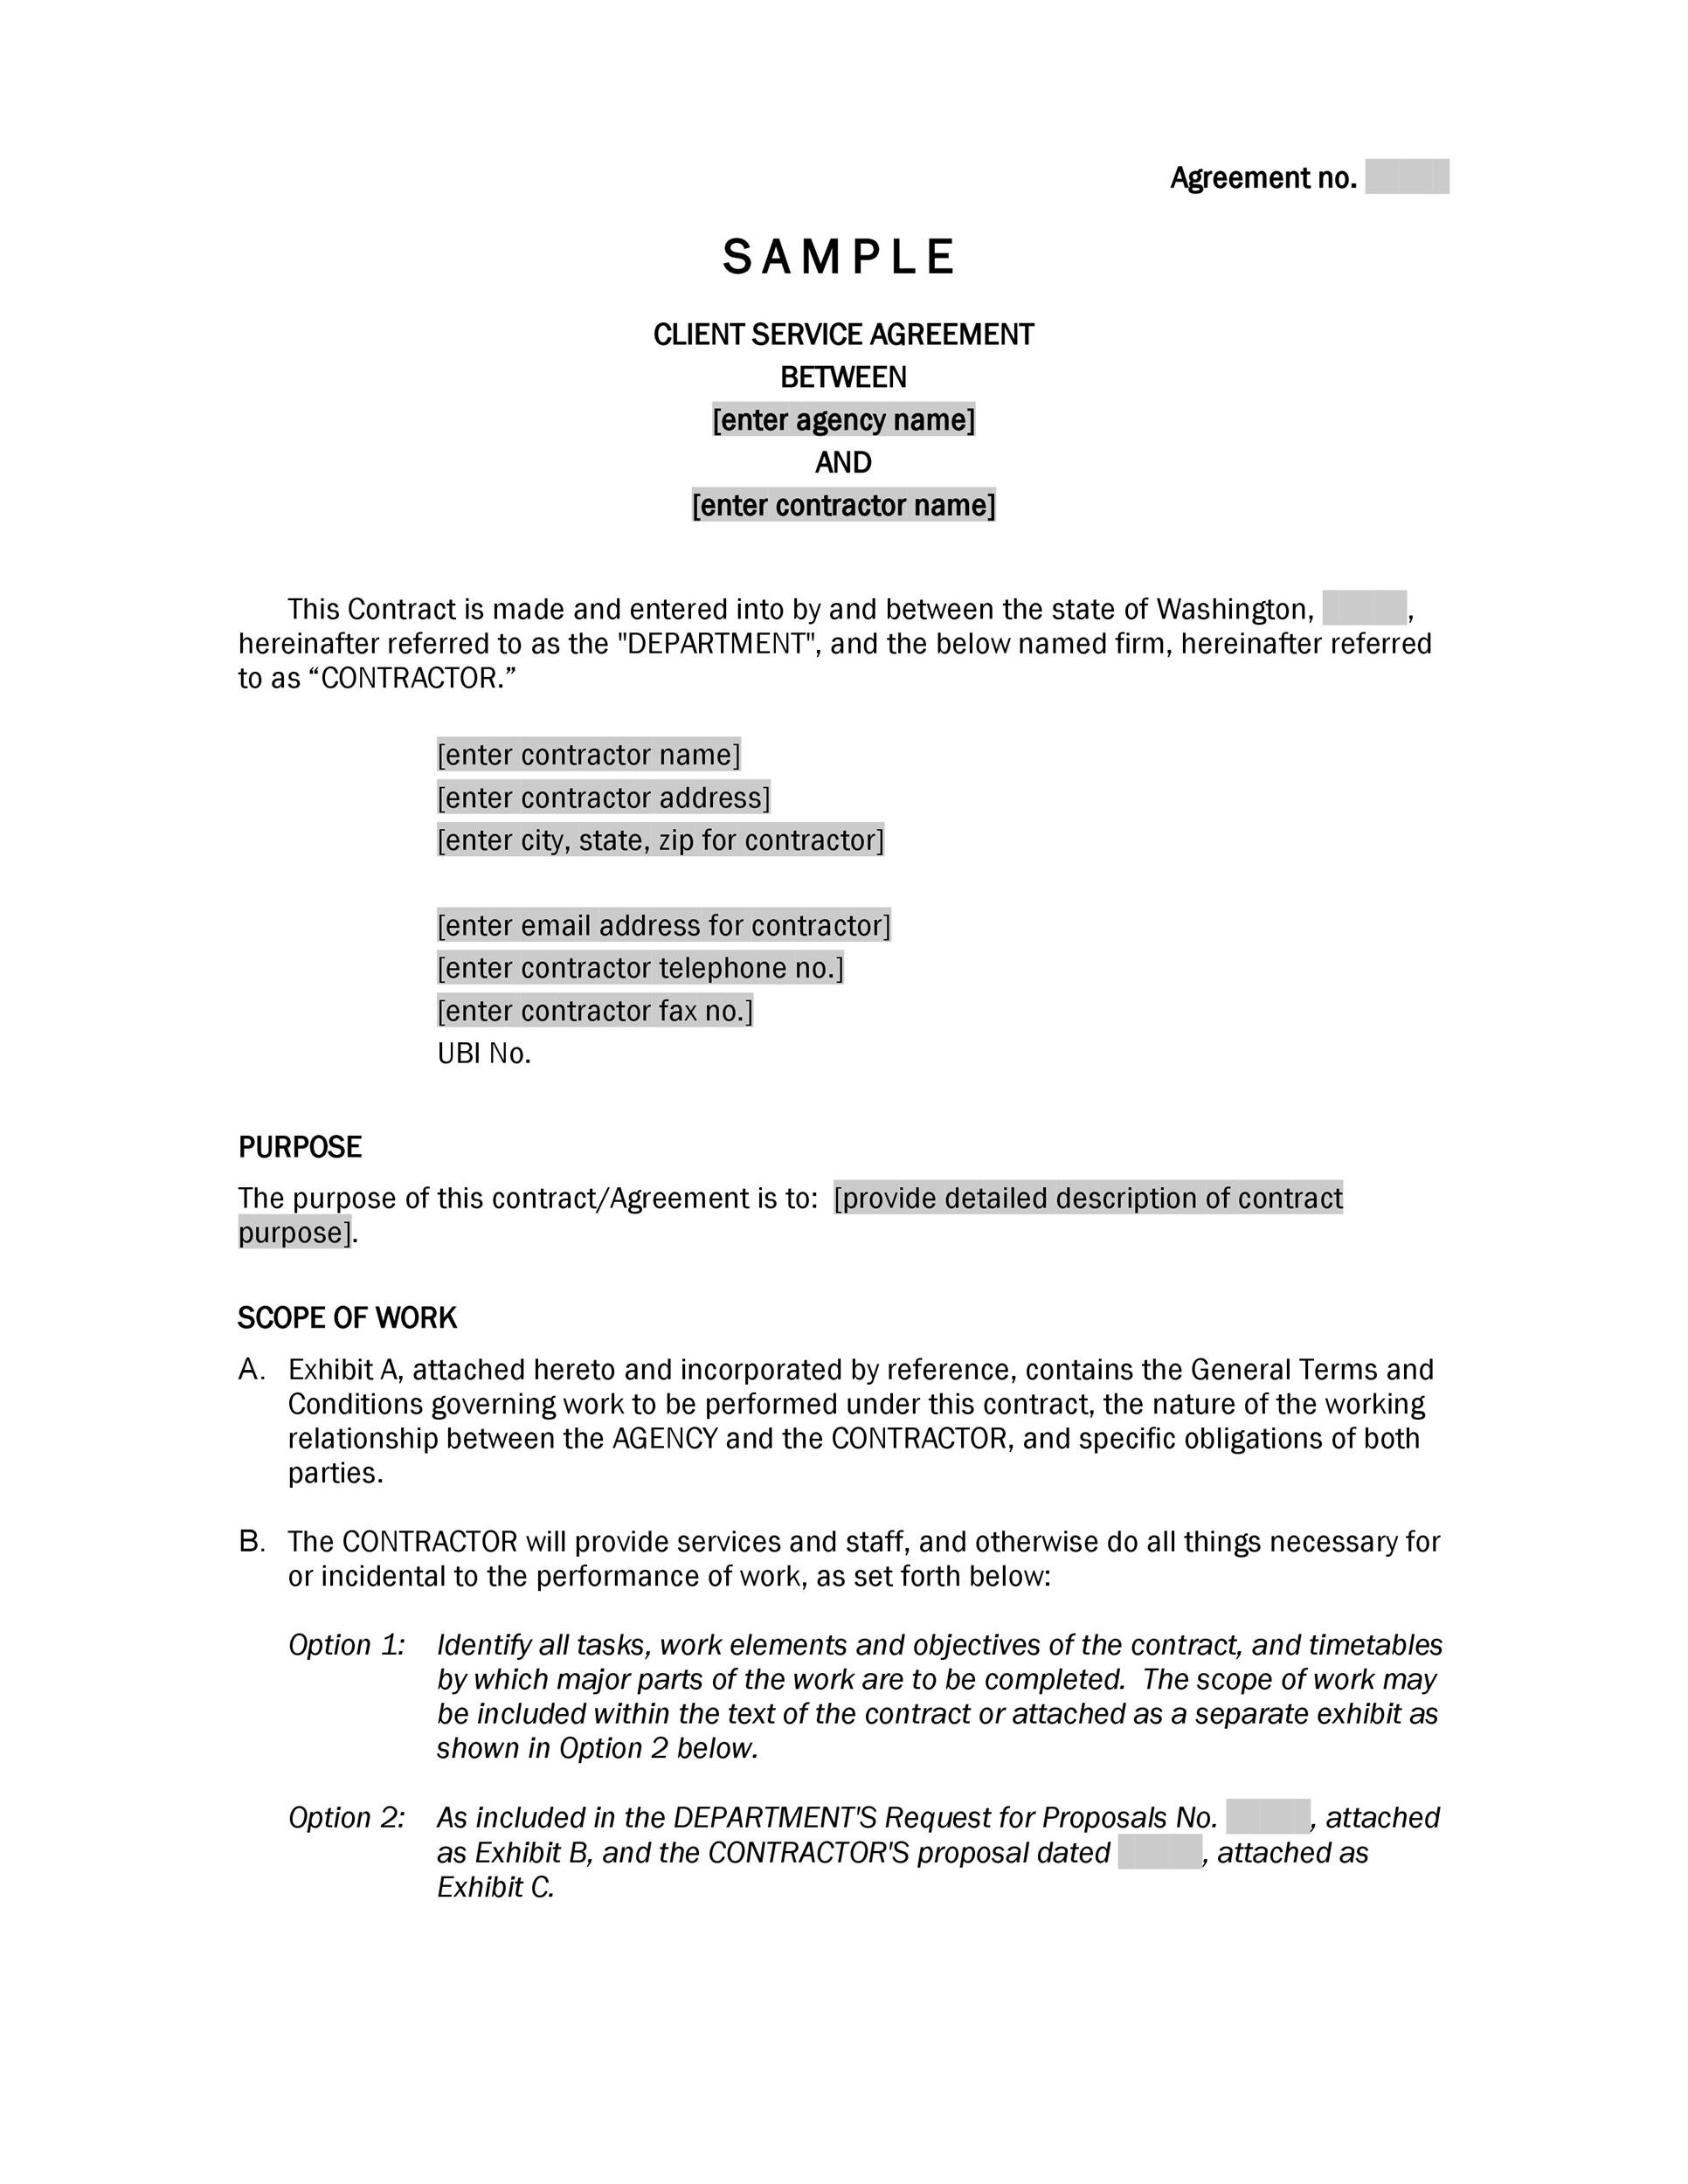 Professional Service Agreement Templates Contracts - Contracts and agreements templates